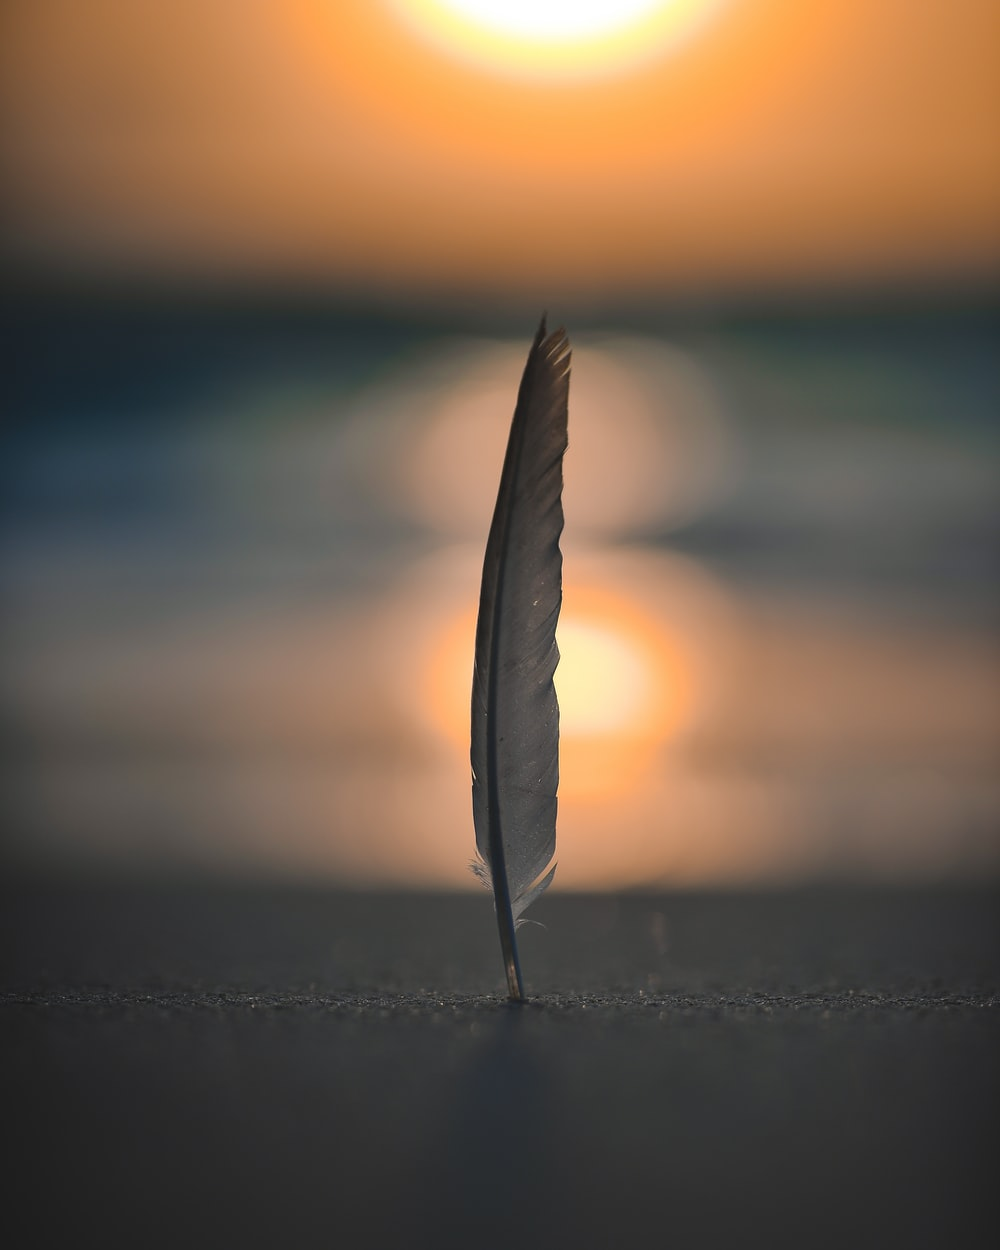 feather on sand in selective focus photography